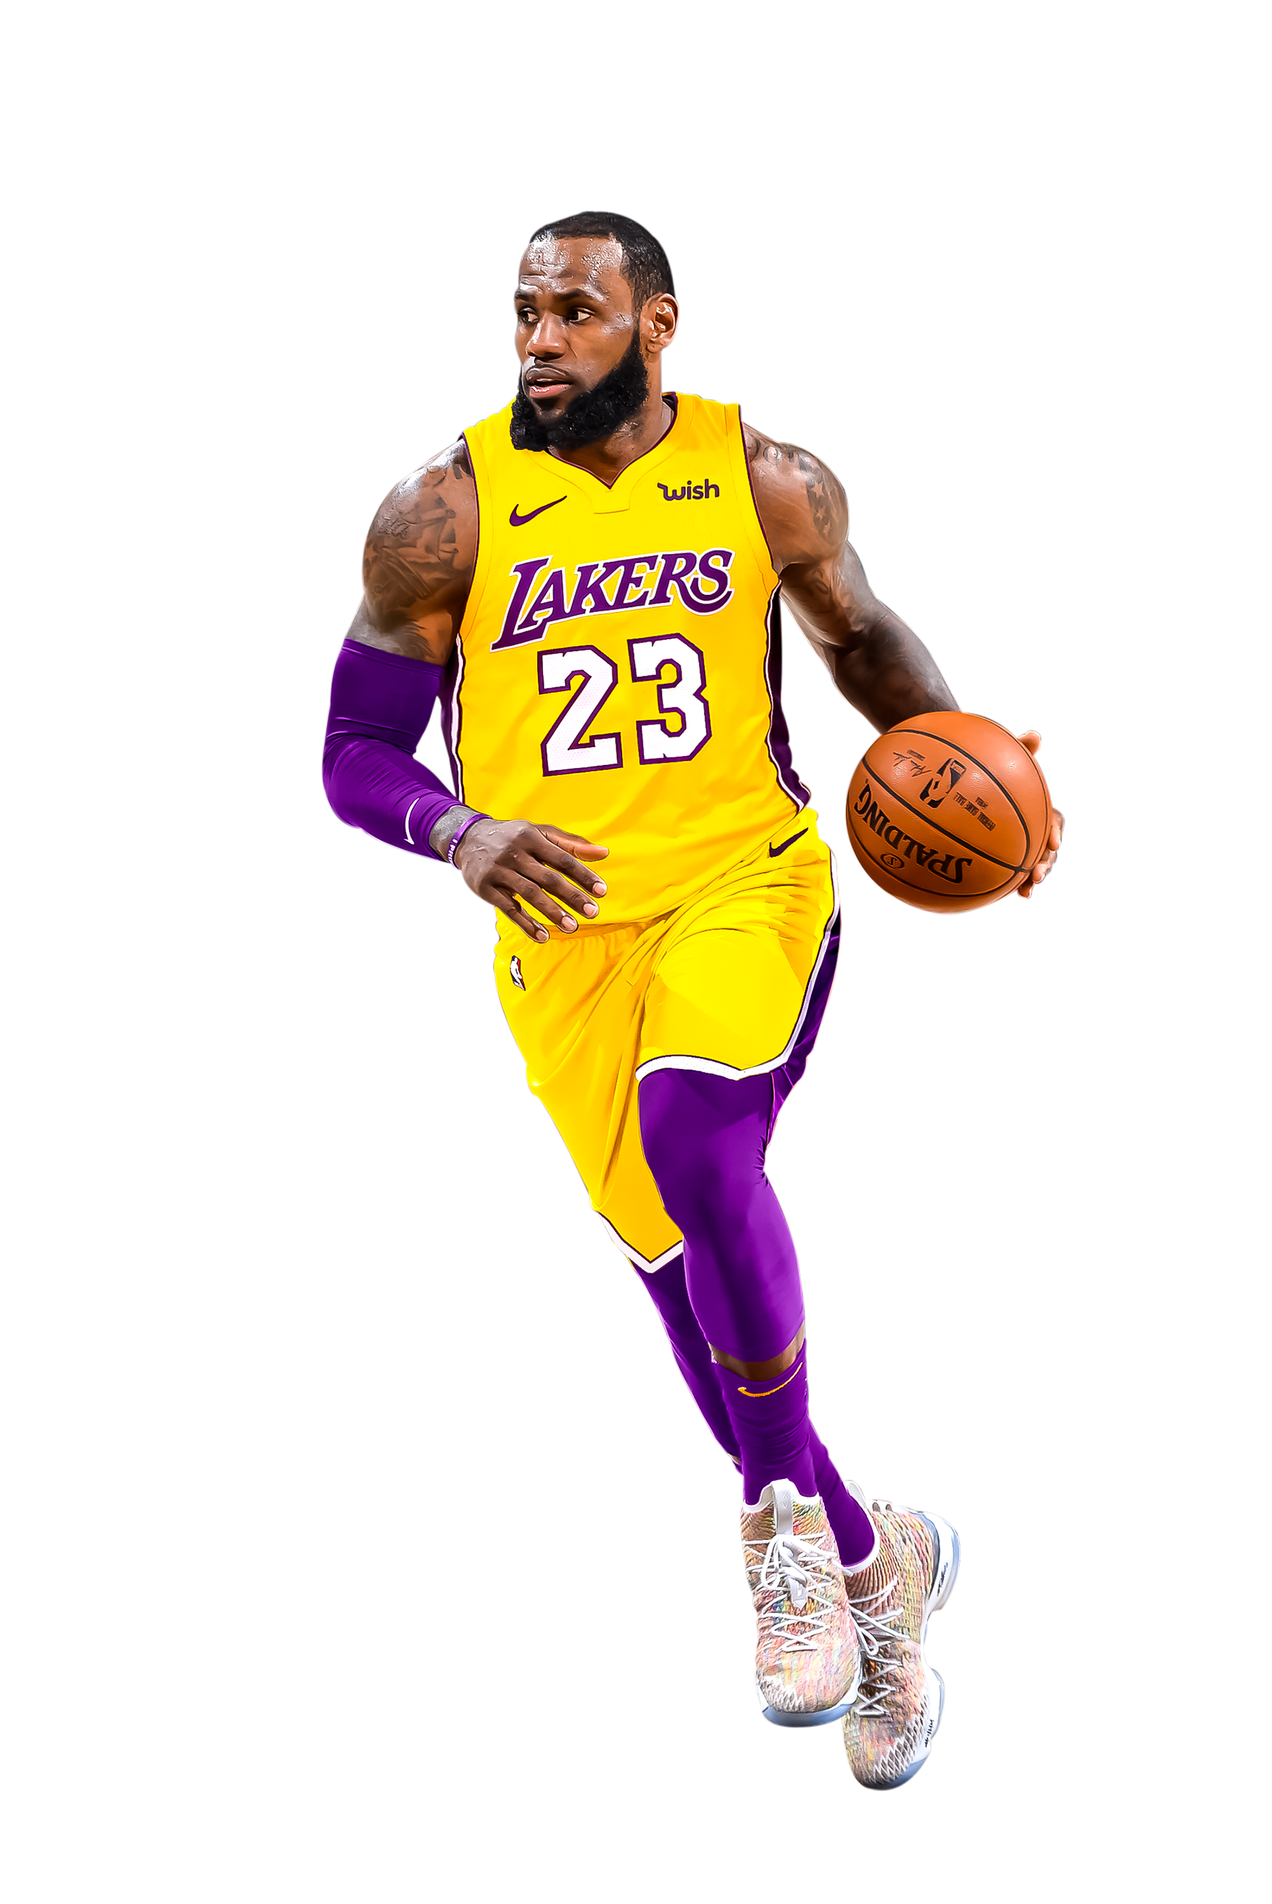 Lebron James Png Free Lebron James Png Transparent Images 28209 Pngio